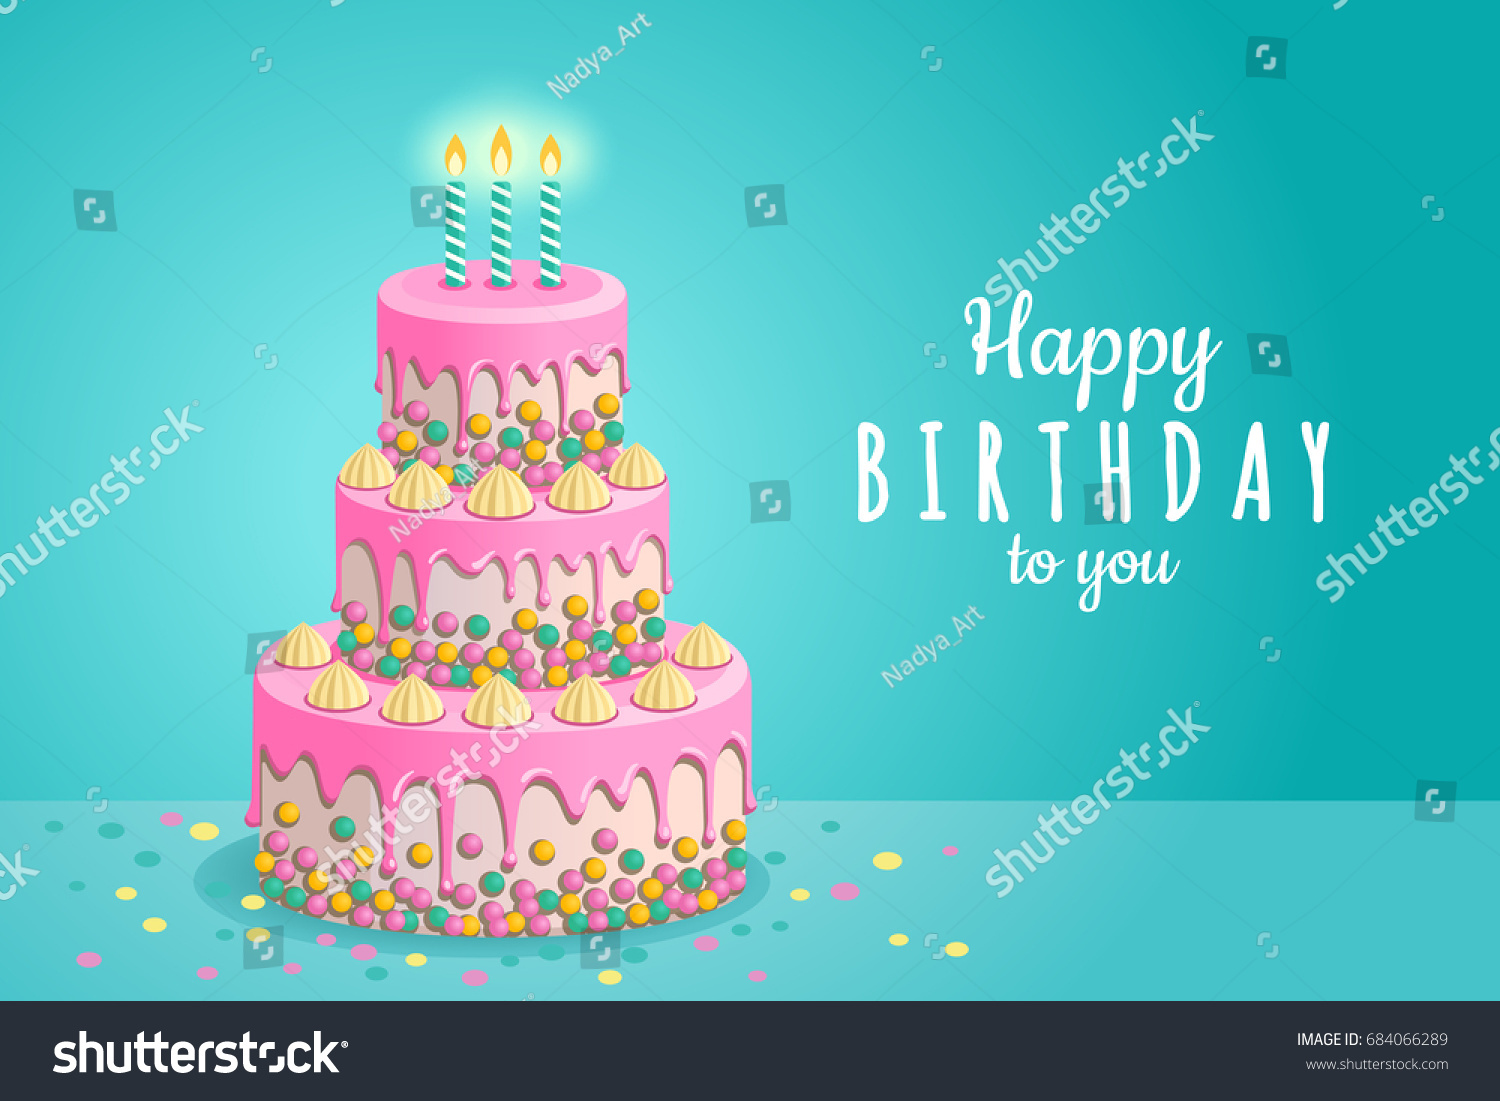 Happy Birthday Greeting Card Vector Illustration Of A Beautiful Three Tier White Cake